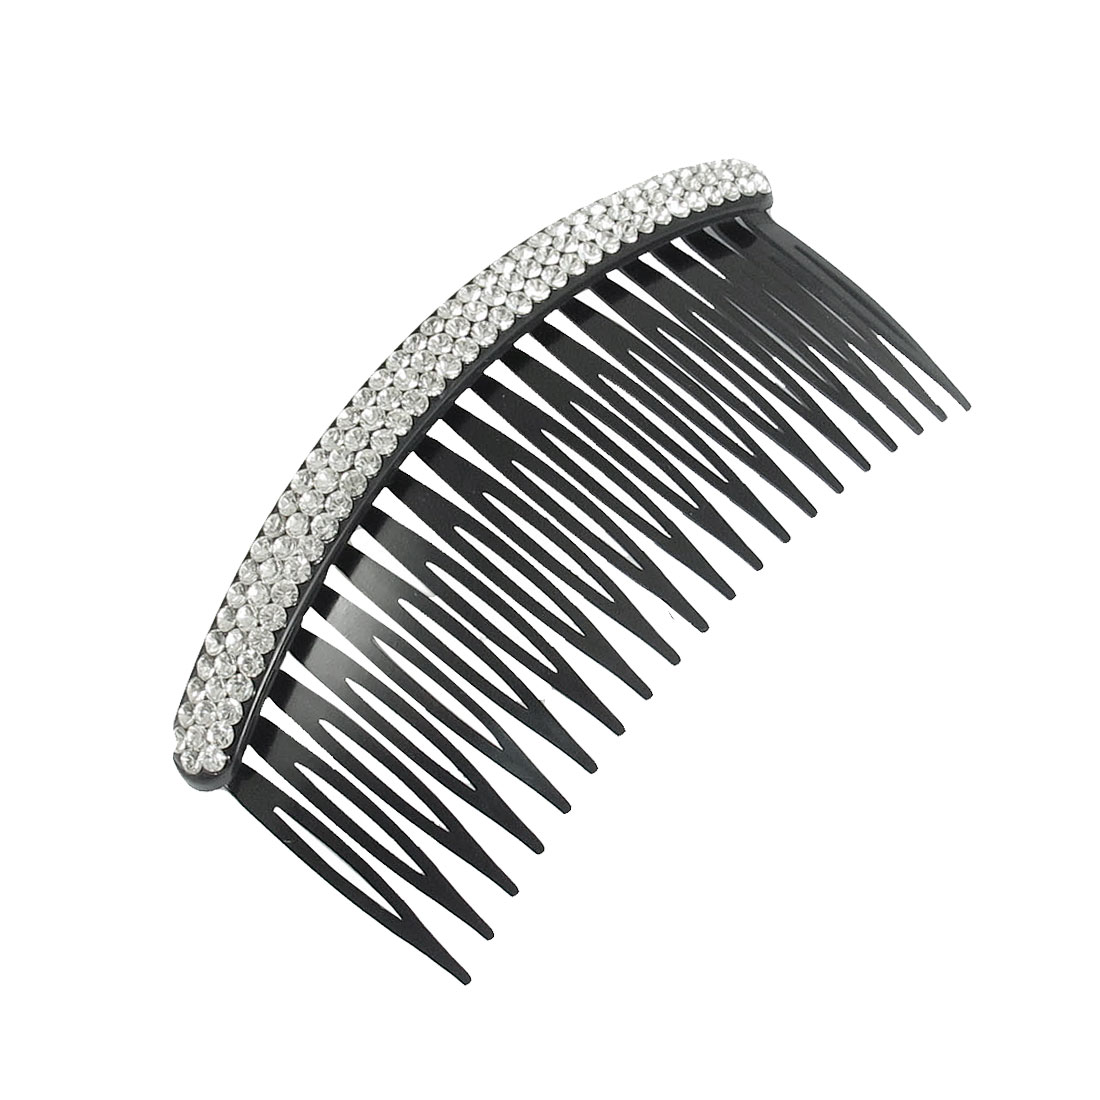 Silver Tone Stripe Rhinestone Plastic Black Hair Comb for Ladies